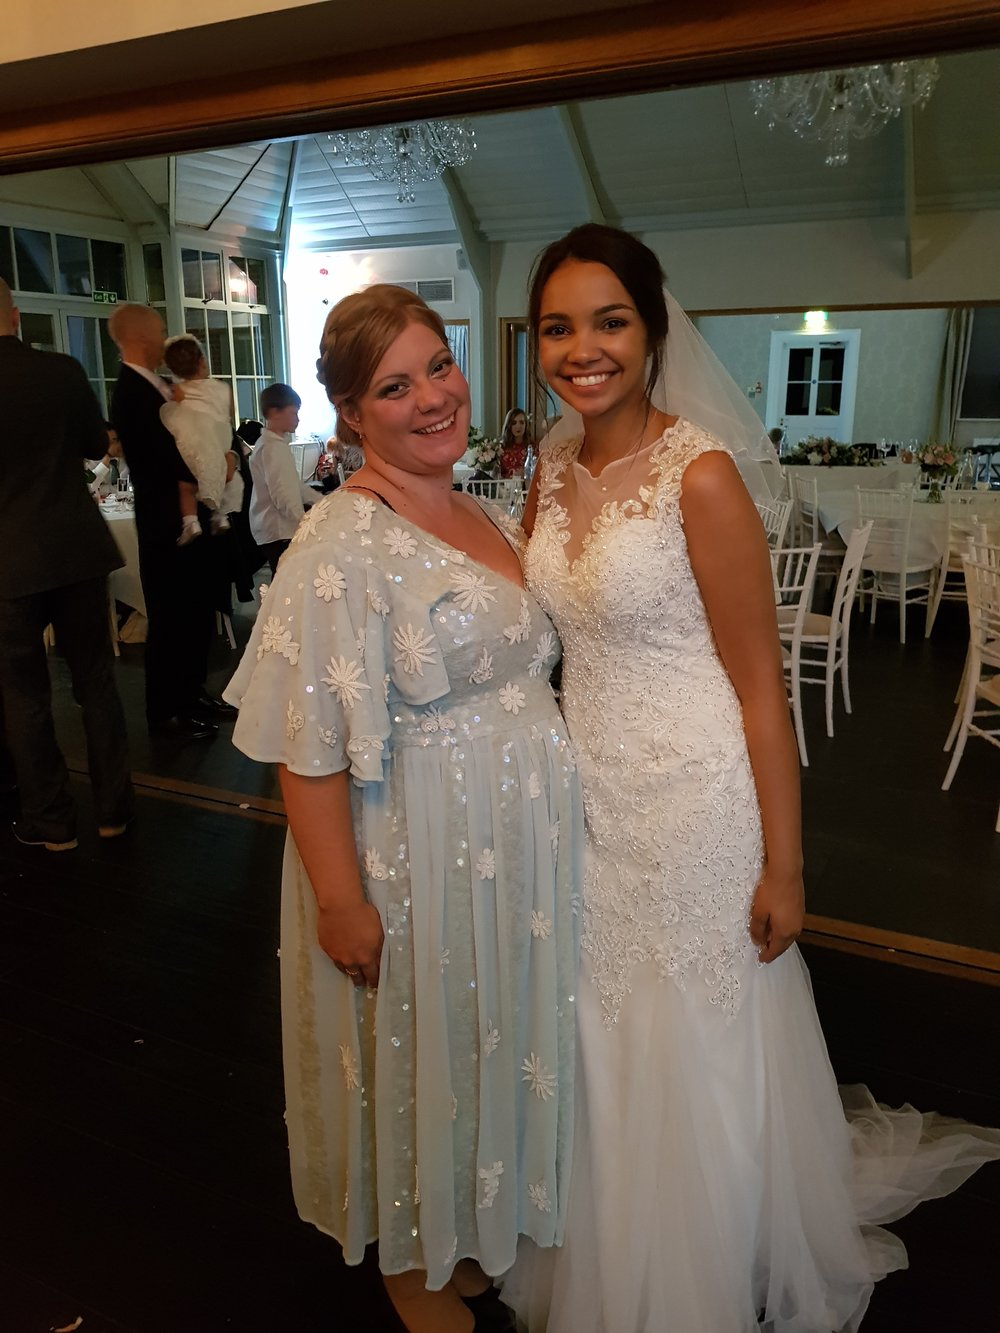 With the gorgeous bride in my SENCHA Embellished Midi Dress from ELVI